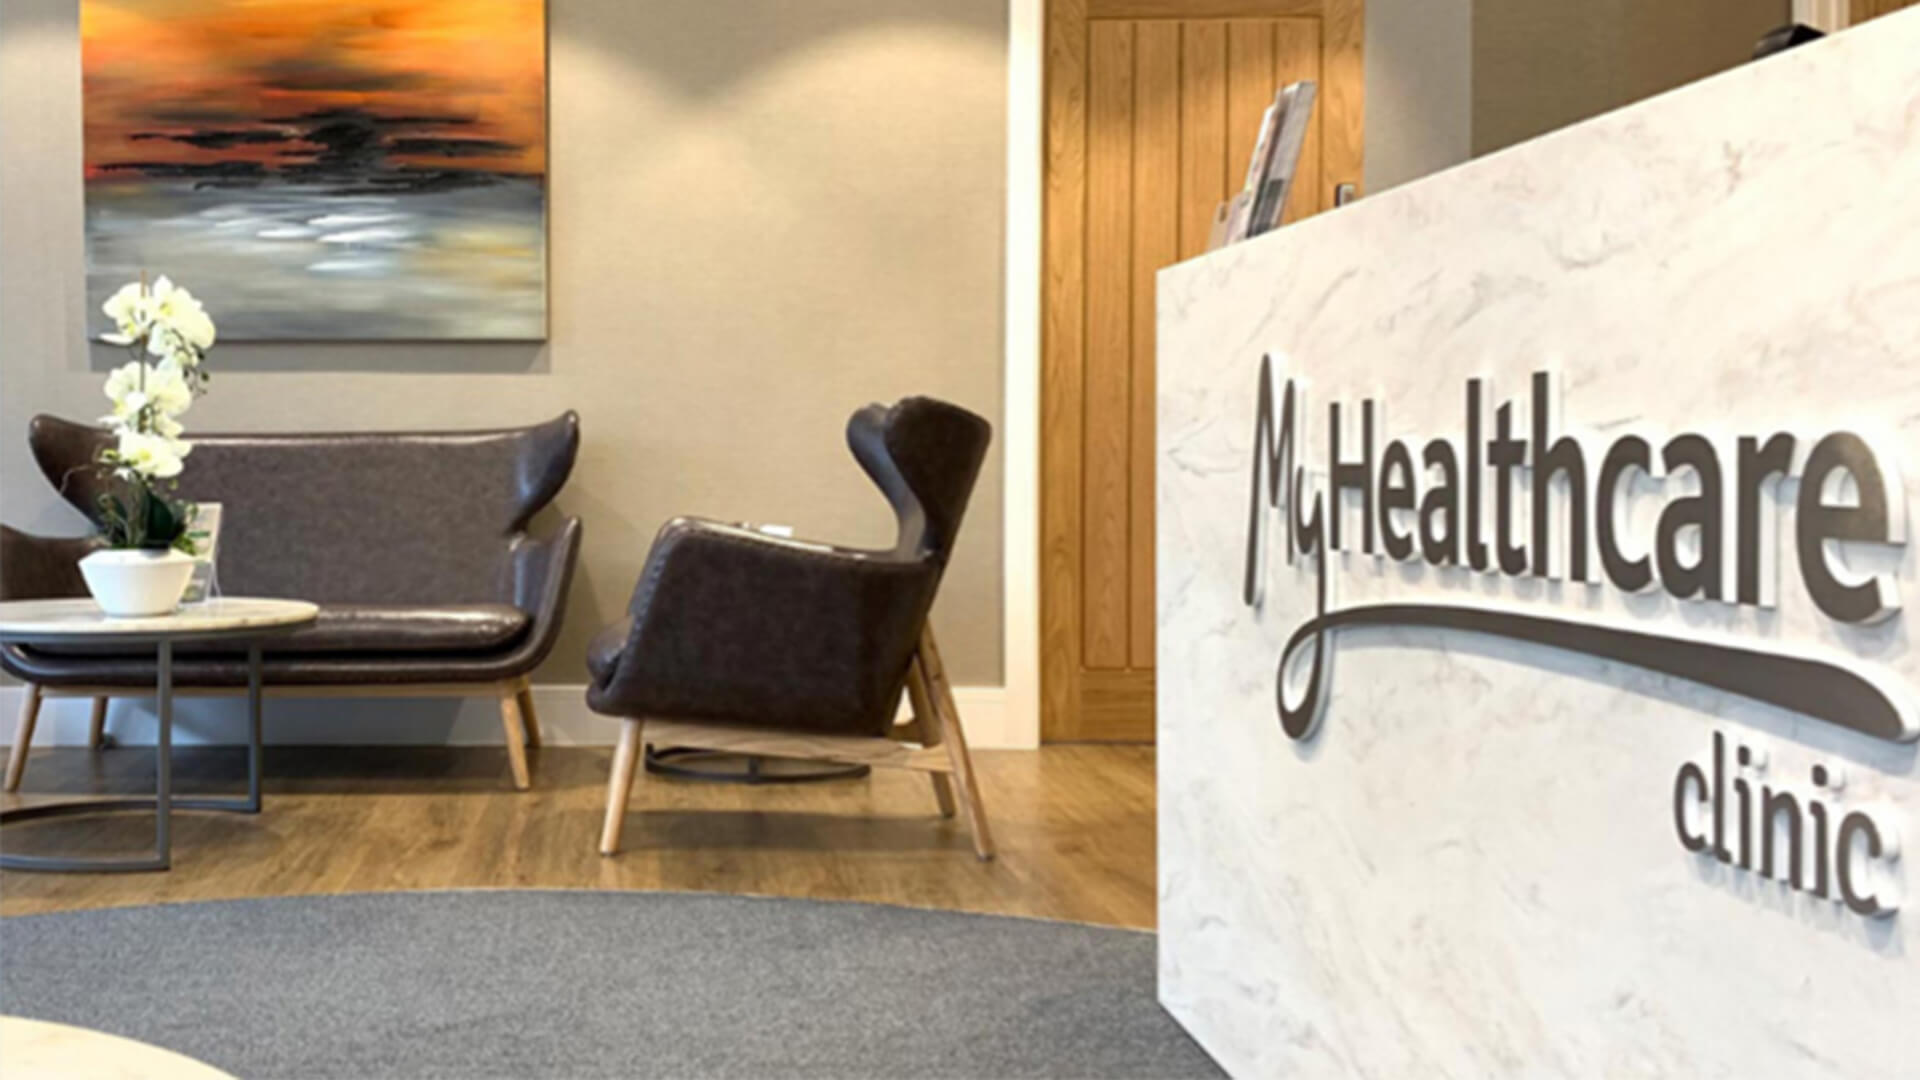 My Healthcare London